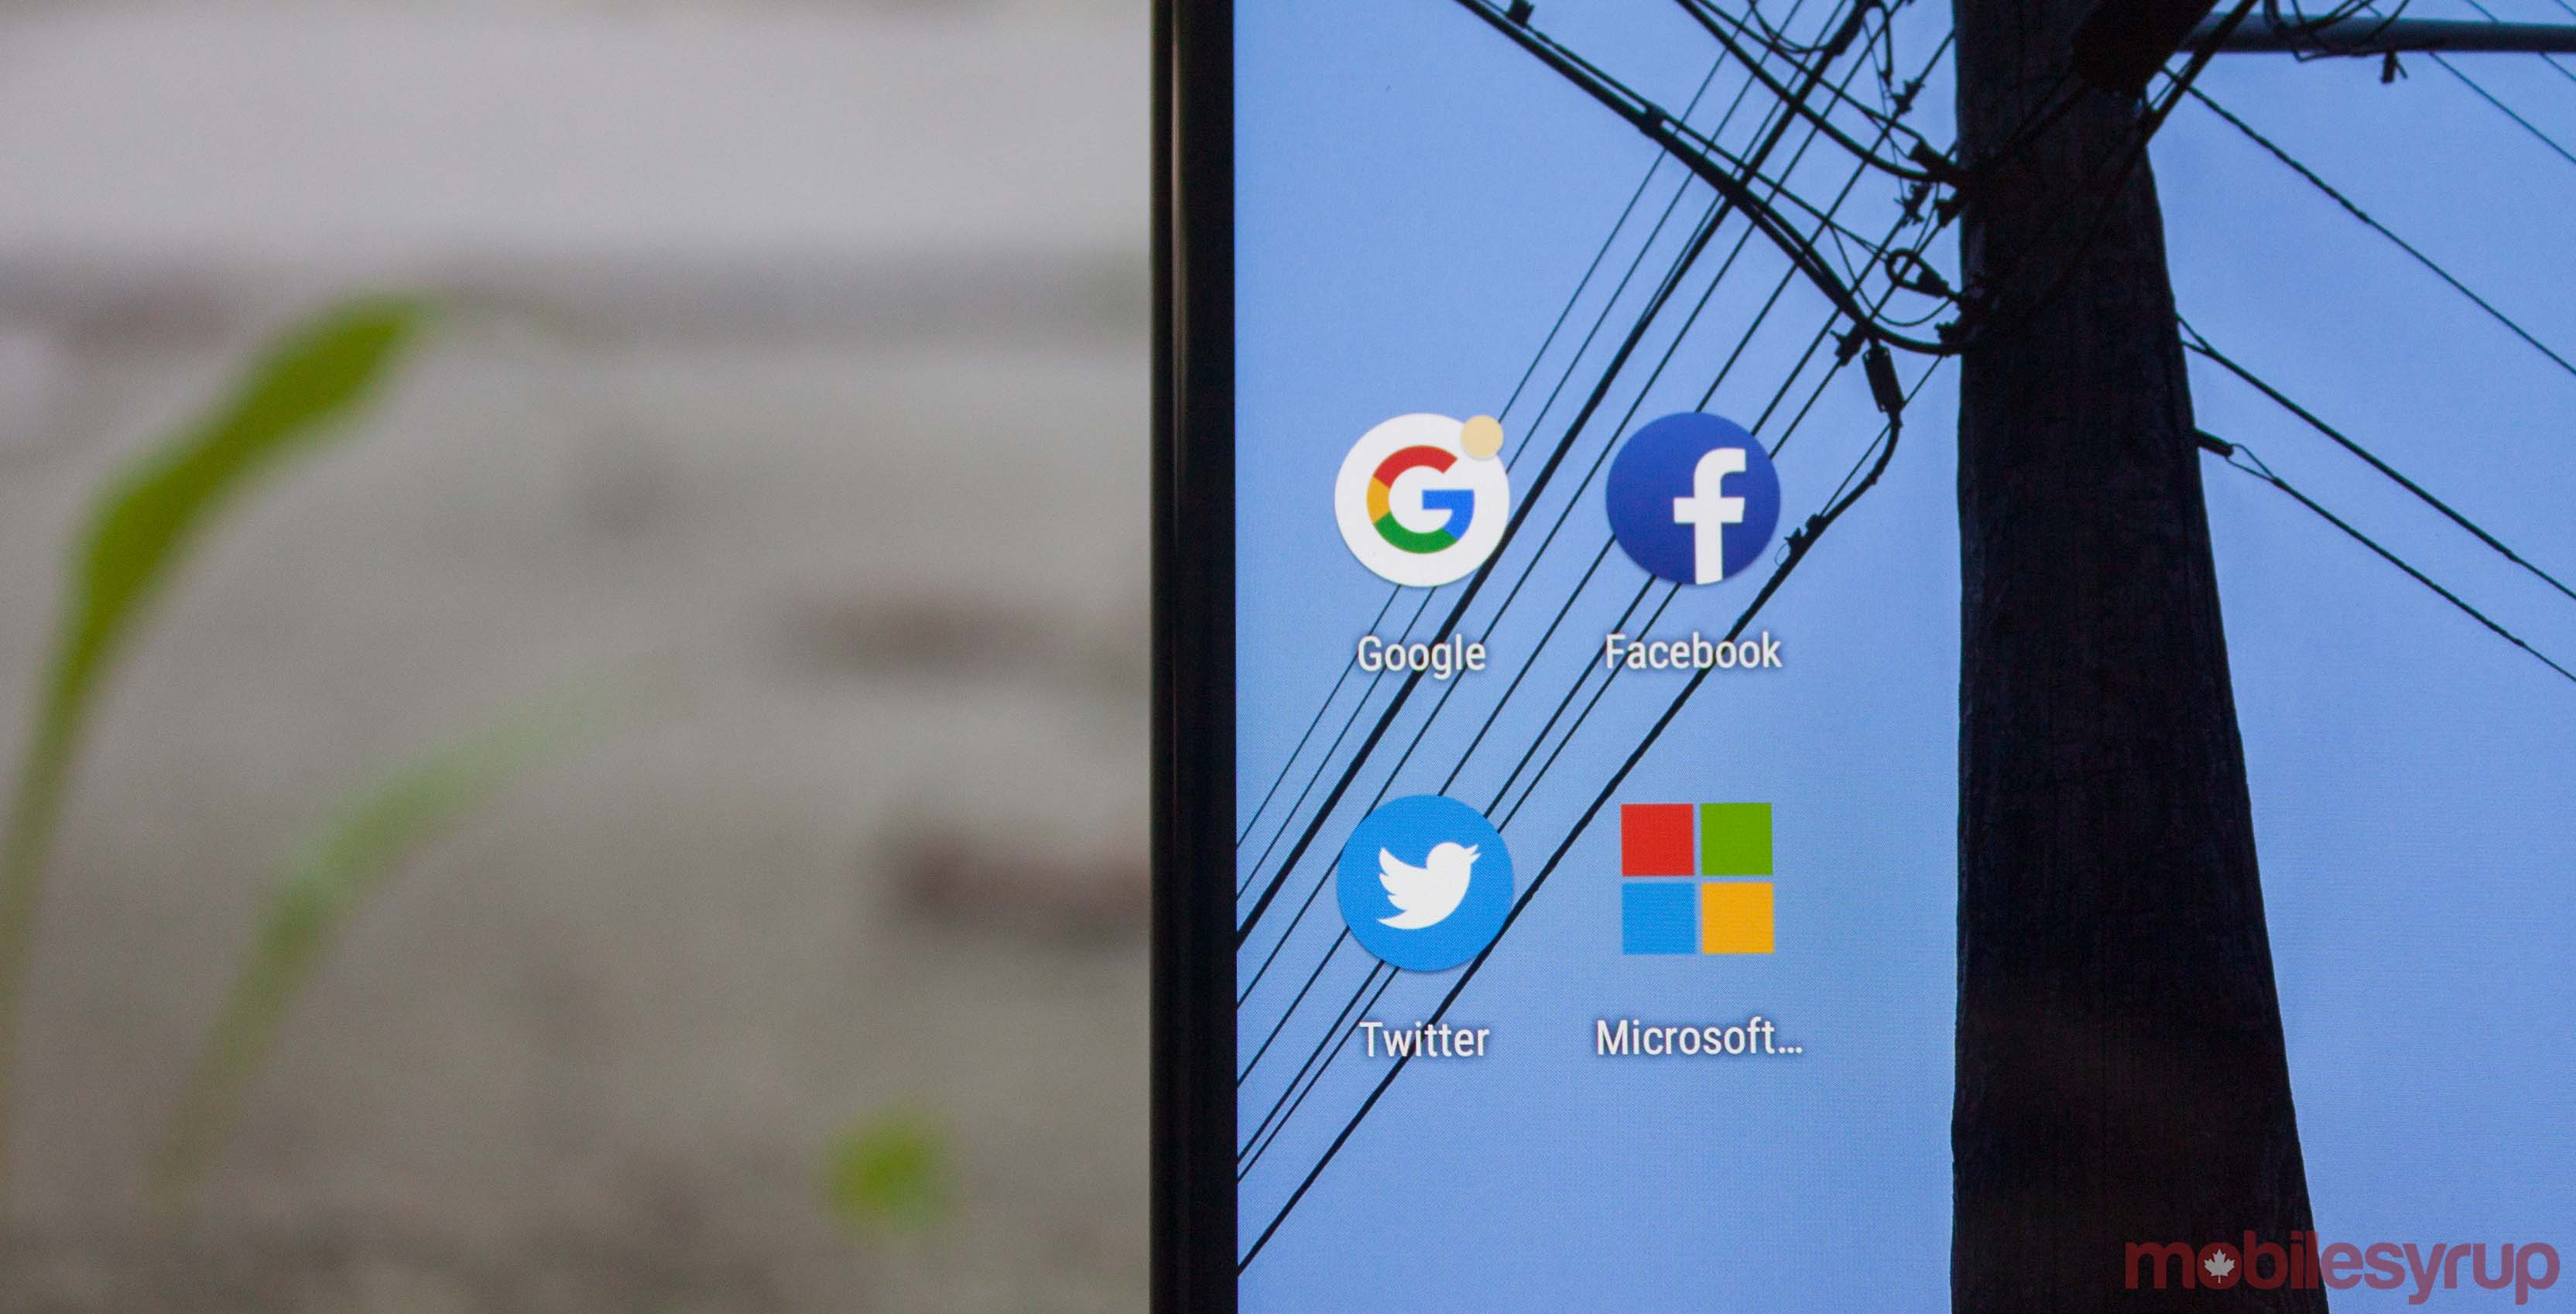 Google, Facebook, Twitter and Microsoft apps